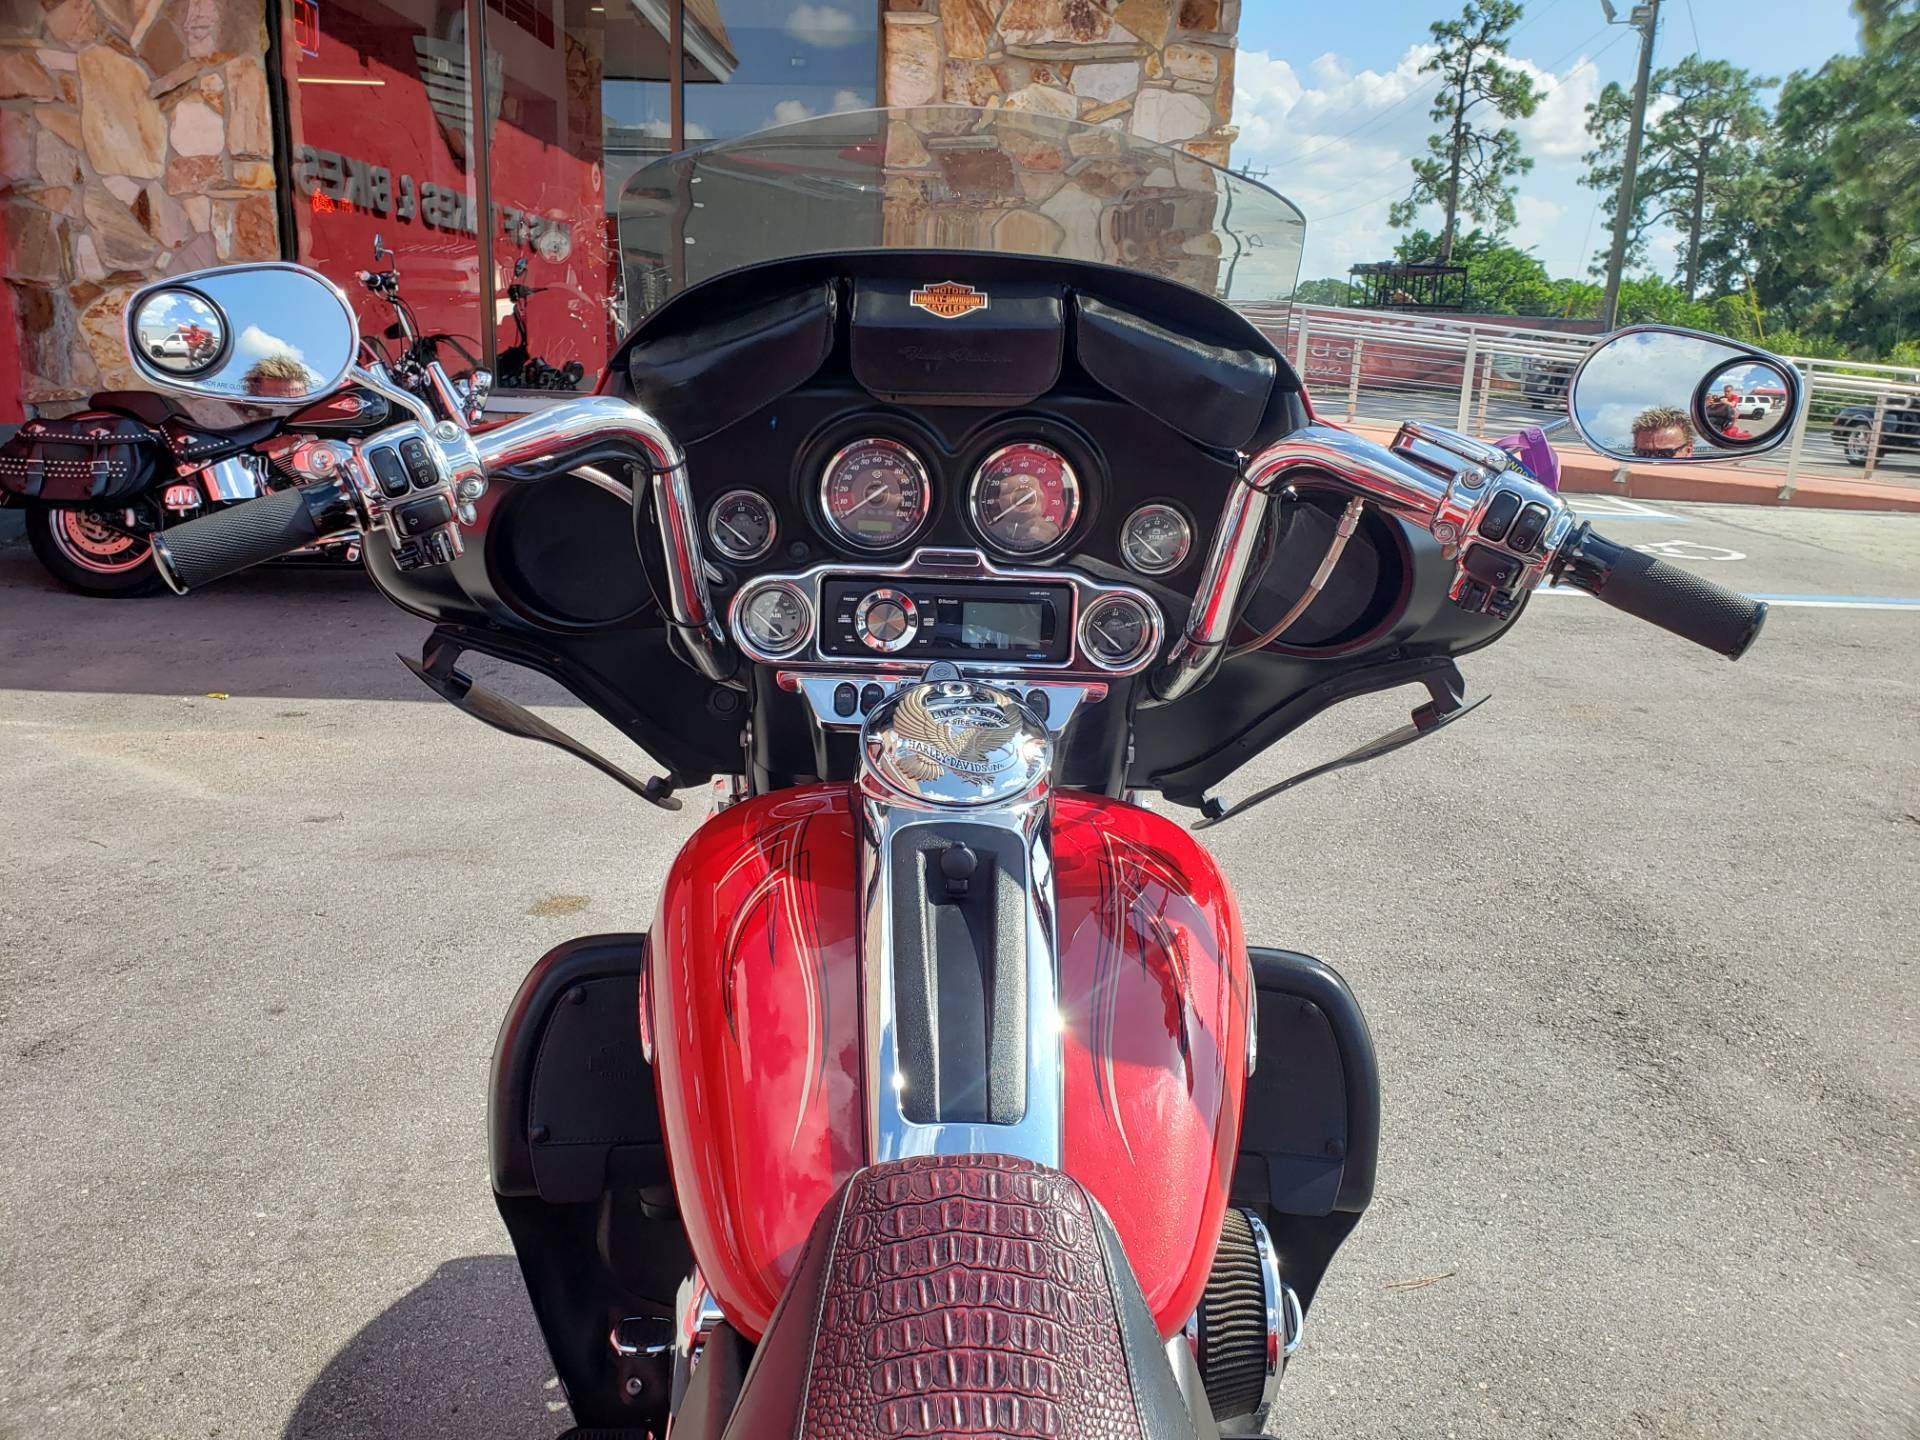 2011 Harley-Davidson ULTRA CLASSIC LIMITED in Fort Myers, Florida - Photo 13